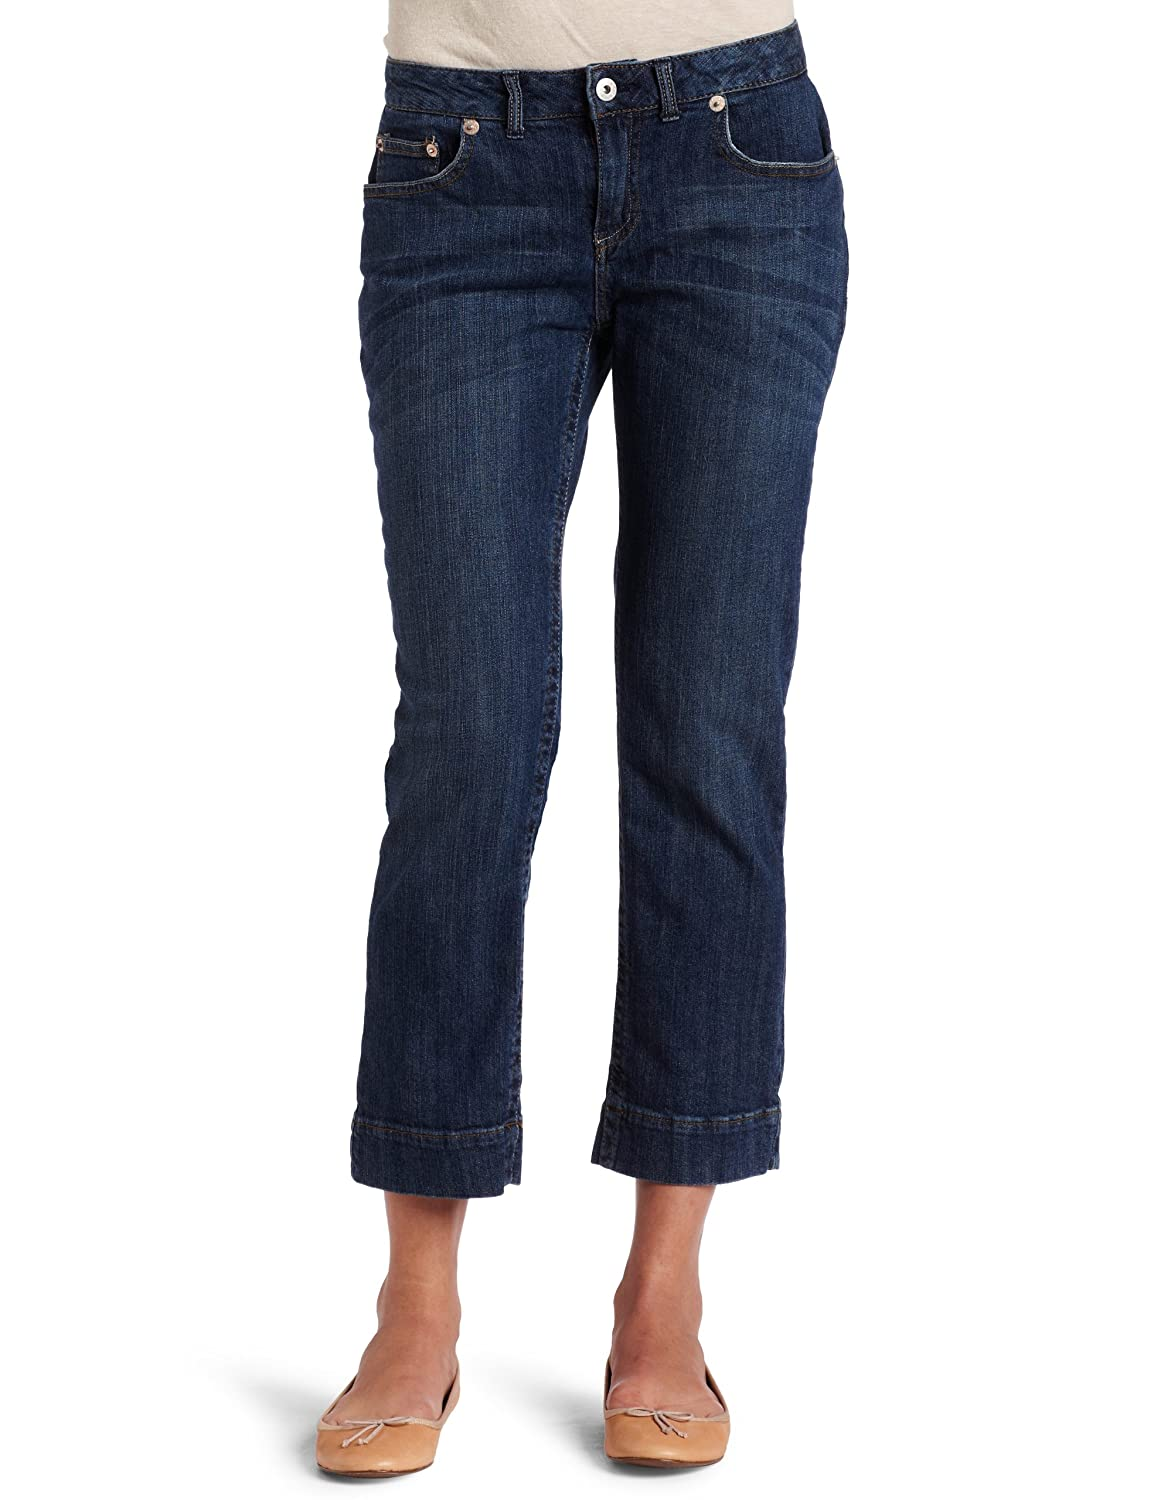 Dickies Women's 26 Inch Slim Denim Crop Pant, Stonewash/Hand Sanding, 12 from $6.33